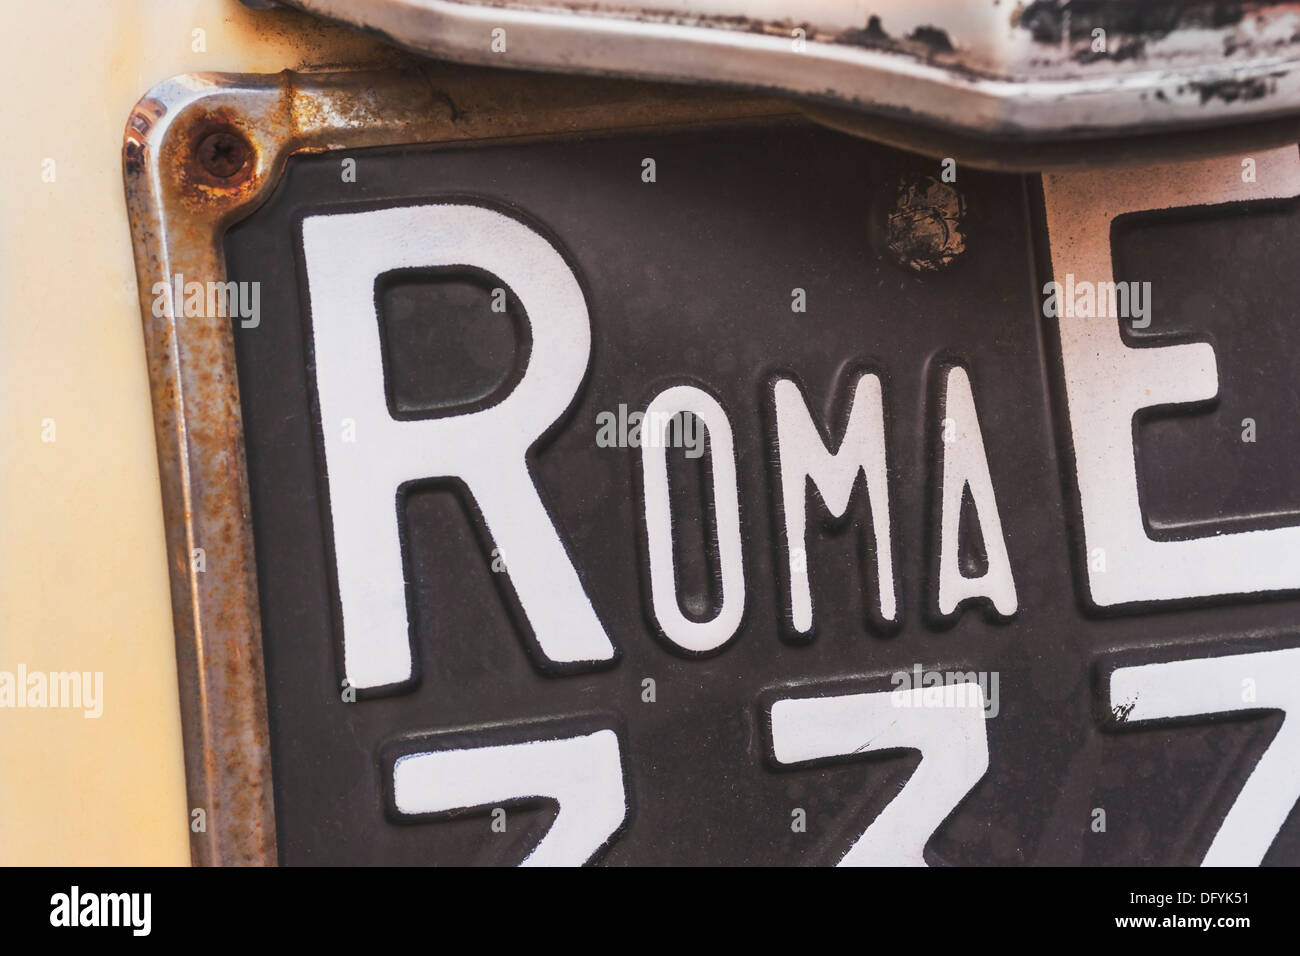 Partial view of the back of a old Fiat Nuova 500 (built from 1957-1977) with a black number plate, Rome, Lazio, Italy, Europe - Stock Image